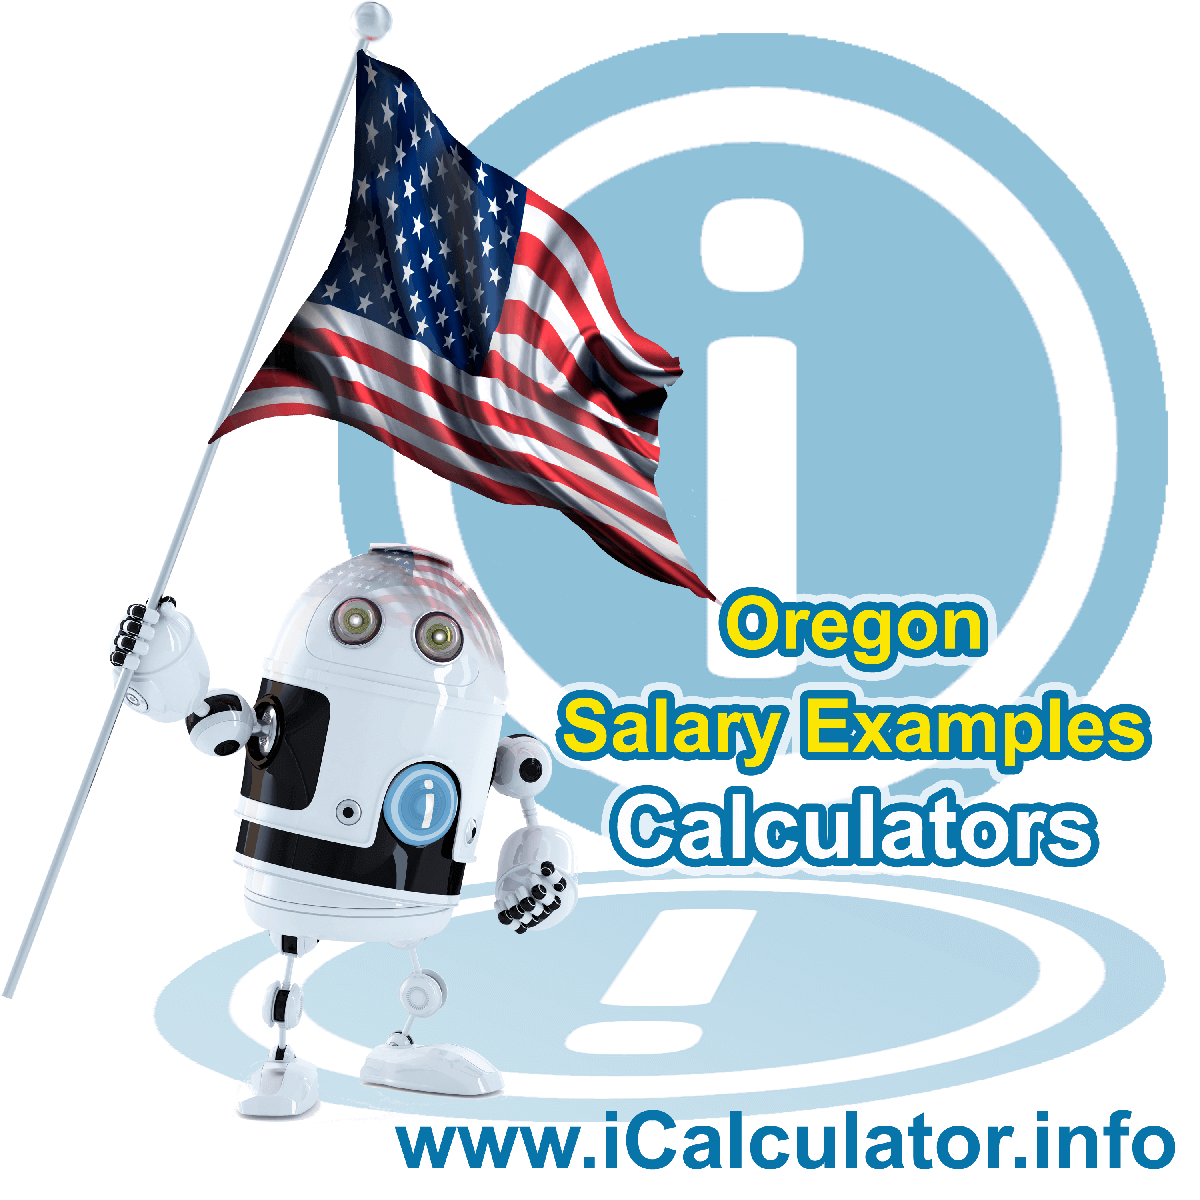 Oregon Salary Example for $60,000.00 in 2020 | iCalculator | $60,000.00 salary example for employee and employer paying Oregon State tincome taxes. Detailed salary after tax calculation including Oregon State Tax, Federal State Tax, Medicare Deductions, Social Security, Capital Gains and other income tax and salary deductions complete with supporting Oregon state tax tables